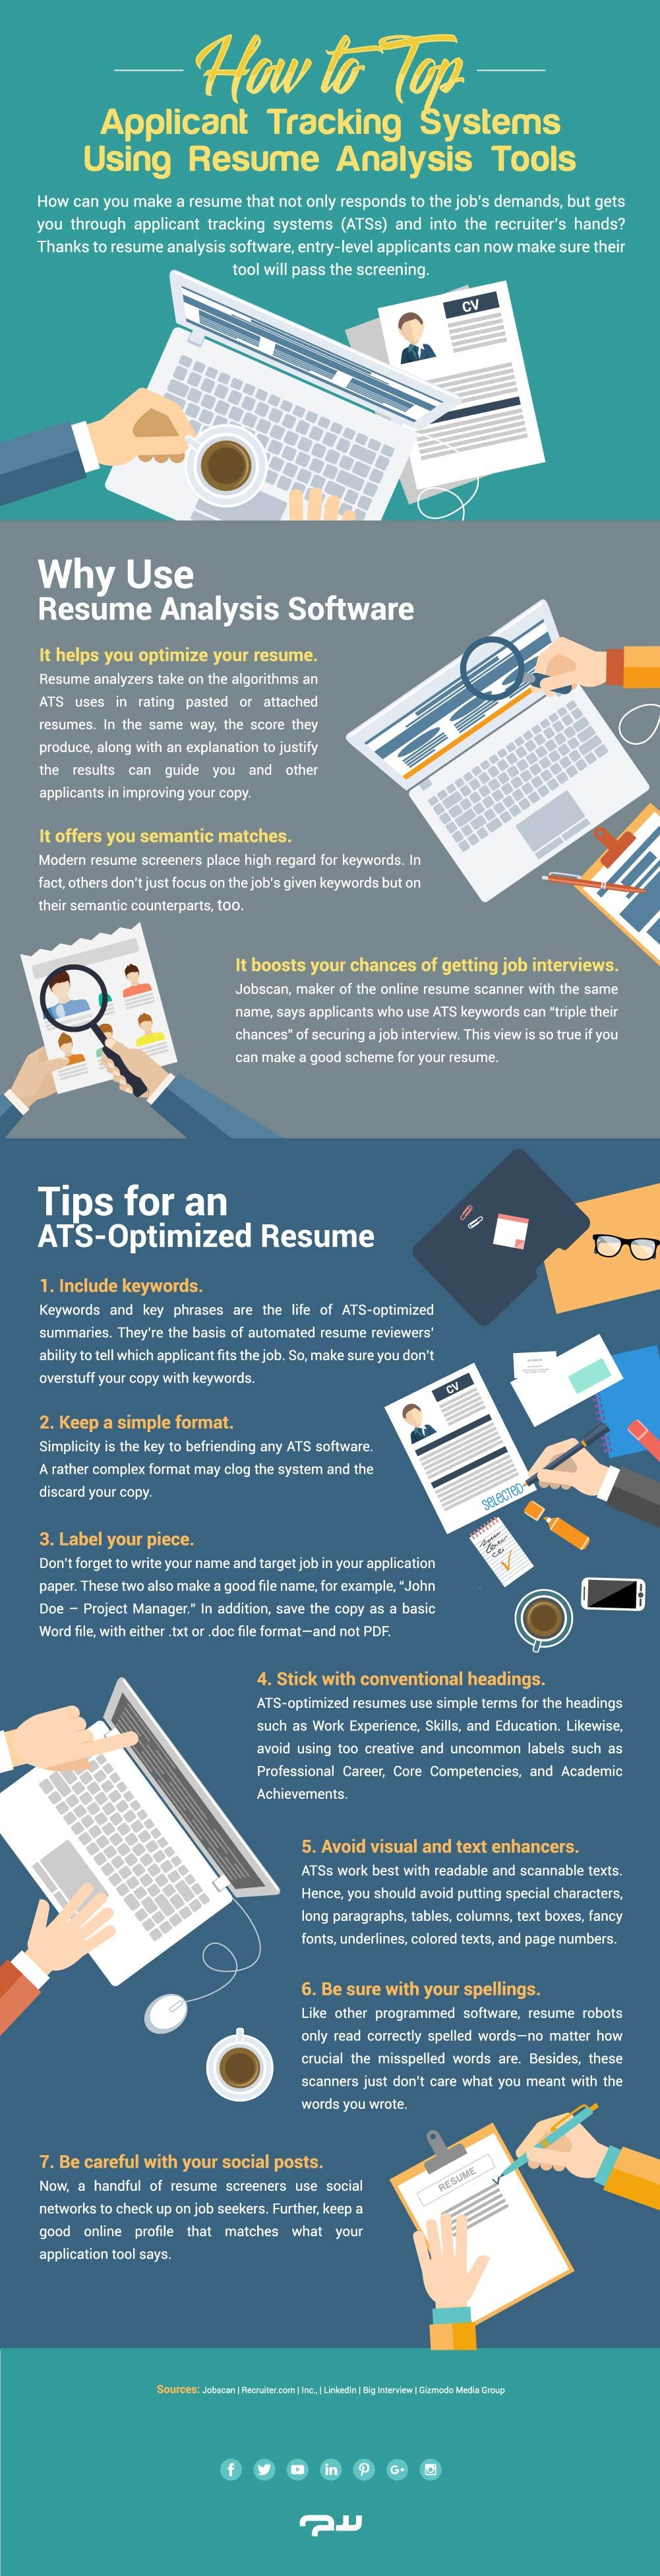 Resume Analysis Software How It Helps Jobseekers Pass the